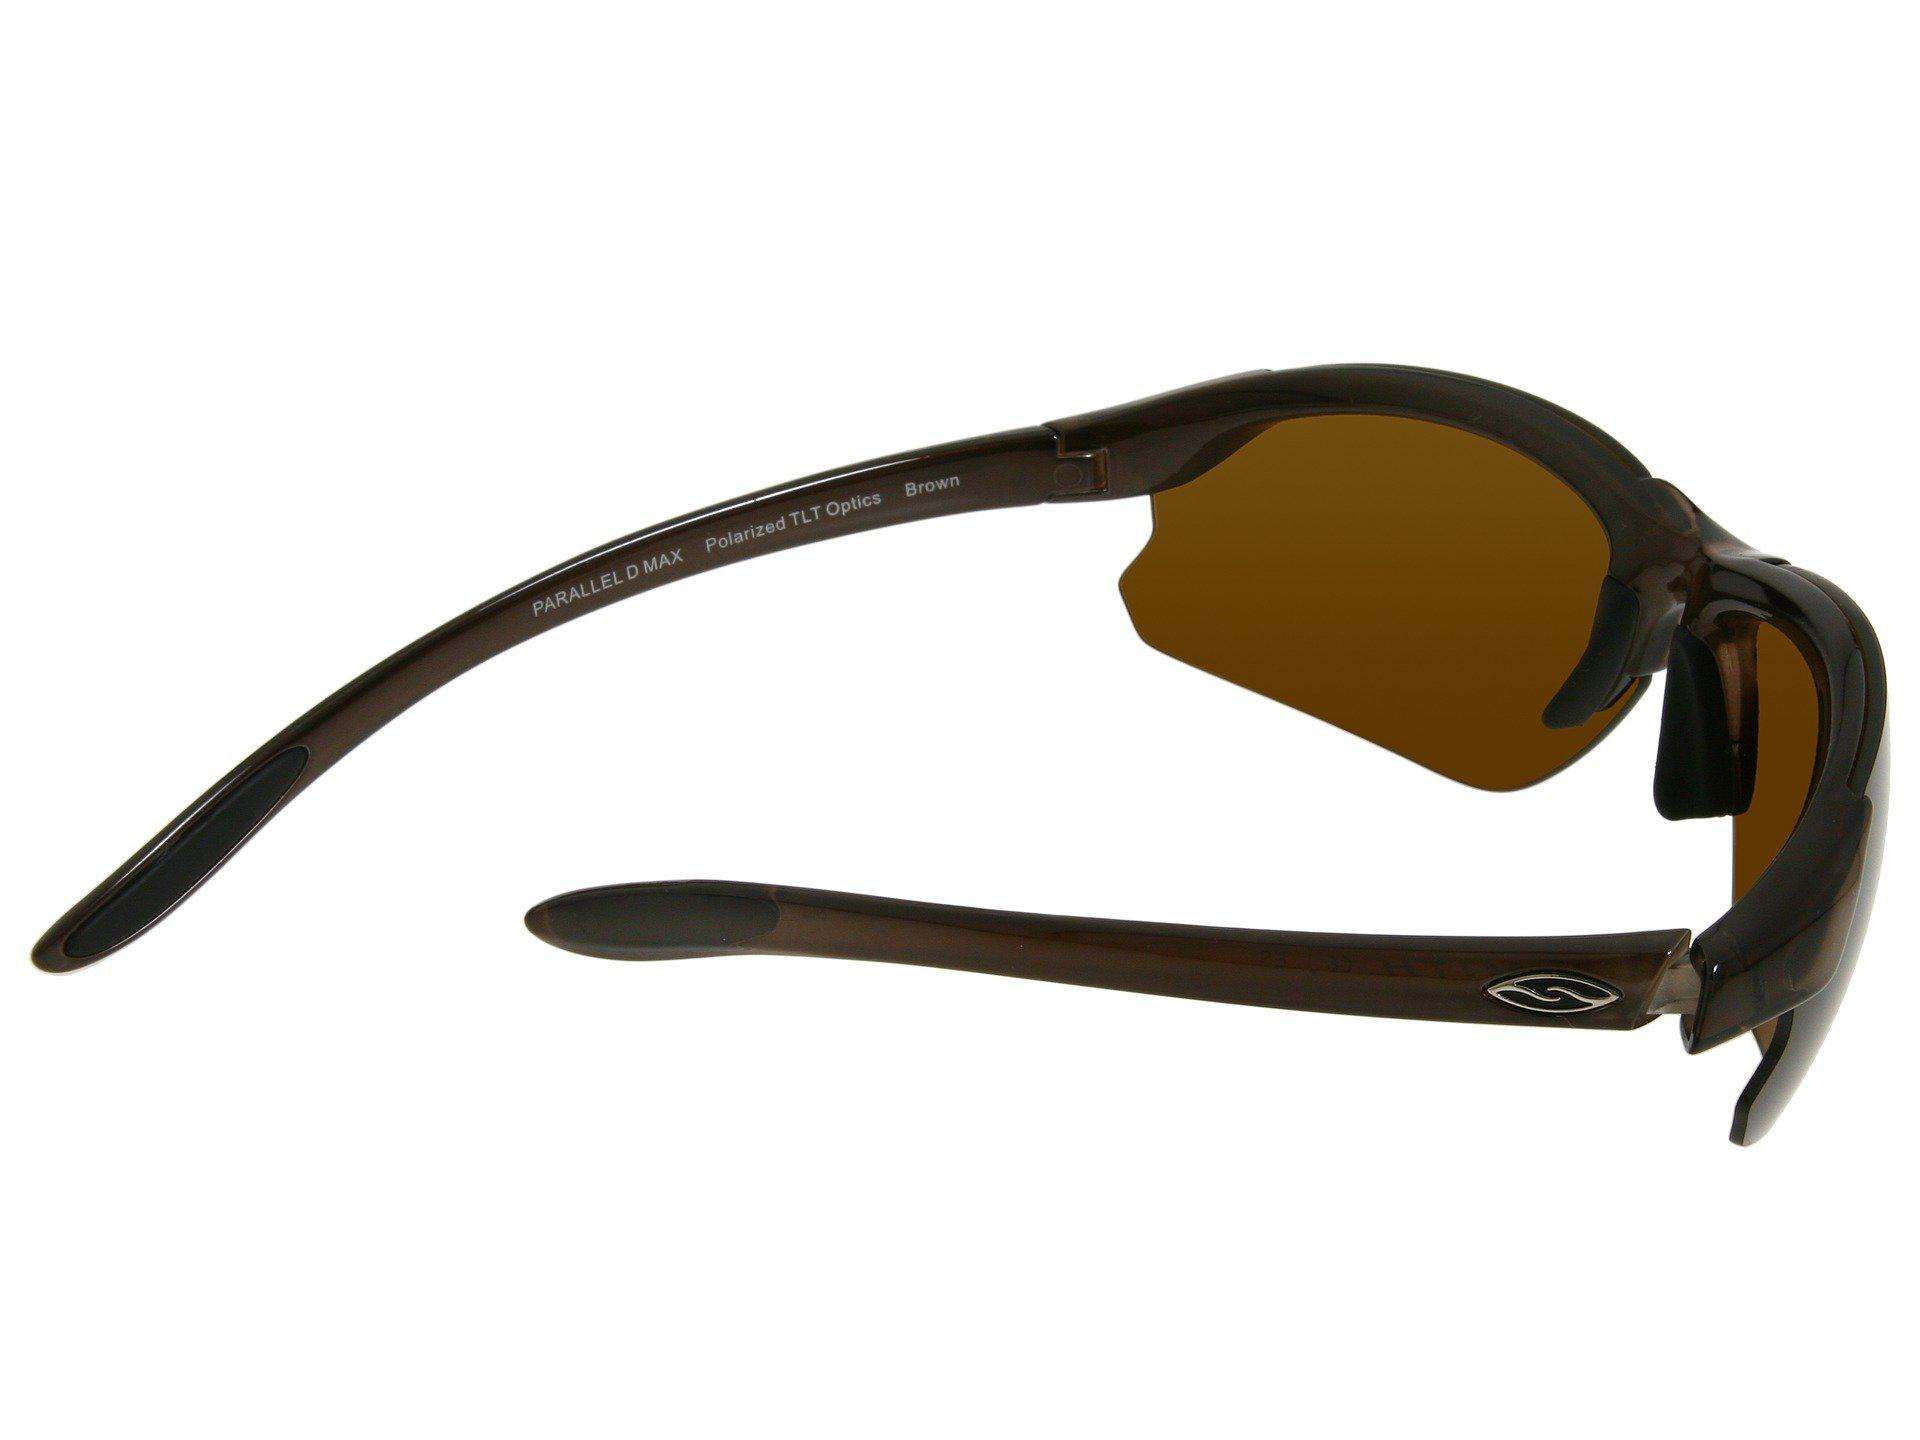 fb069d8fca Smith Optics - Parallel D-max Polarized Lens (brown brown ignitor . View  fullscreen